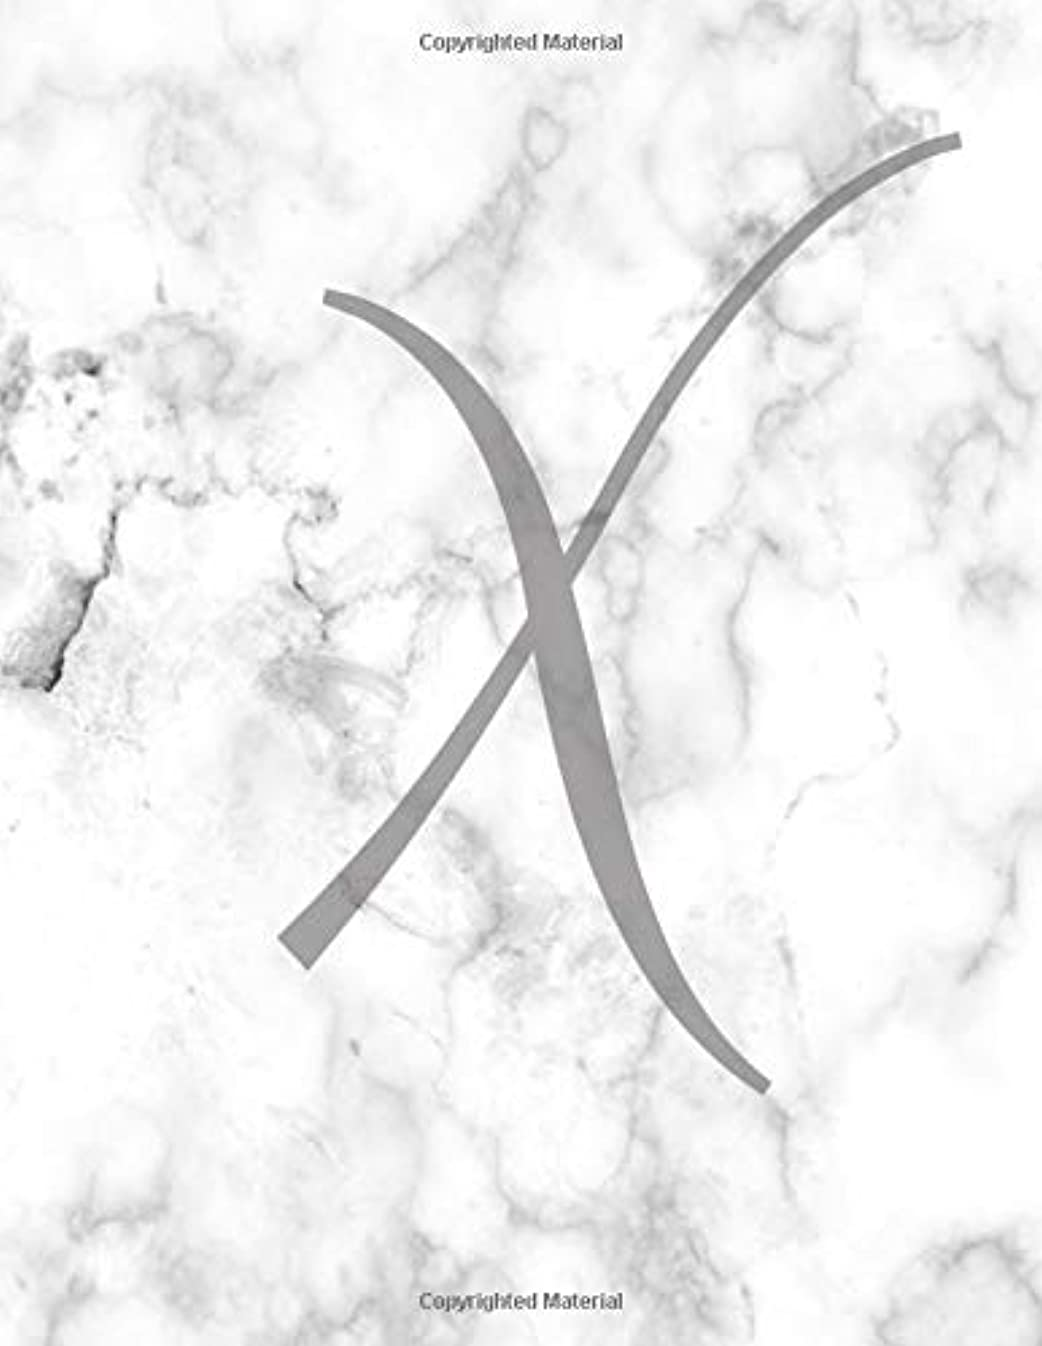 蒸し器第五禁止するX: Monogram Initial X Notebook for Women and Girls-Grey Marble-120 Pages 8.5 x 11